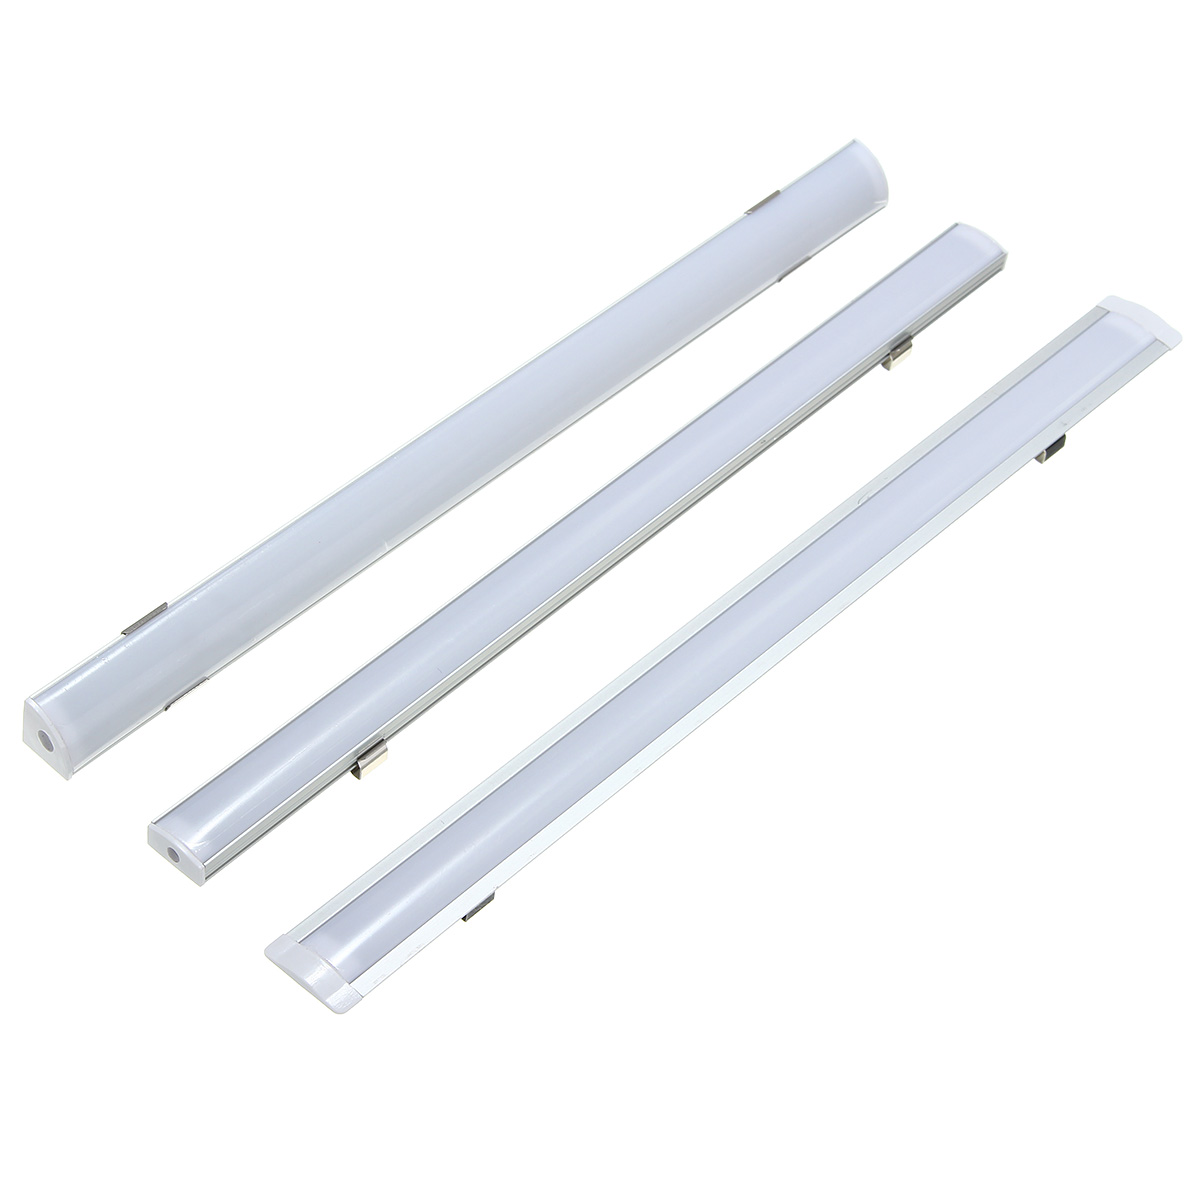 30cm U/V/YW Style Aluminium Milky Cover Rigid Channel Holder for LED Bar Light Strip DIY Lighting Under Cabinet Cupboard Lamp ...